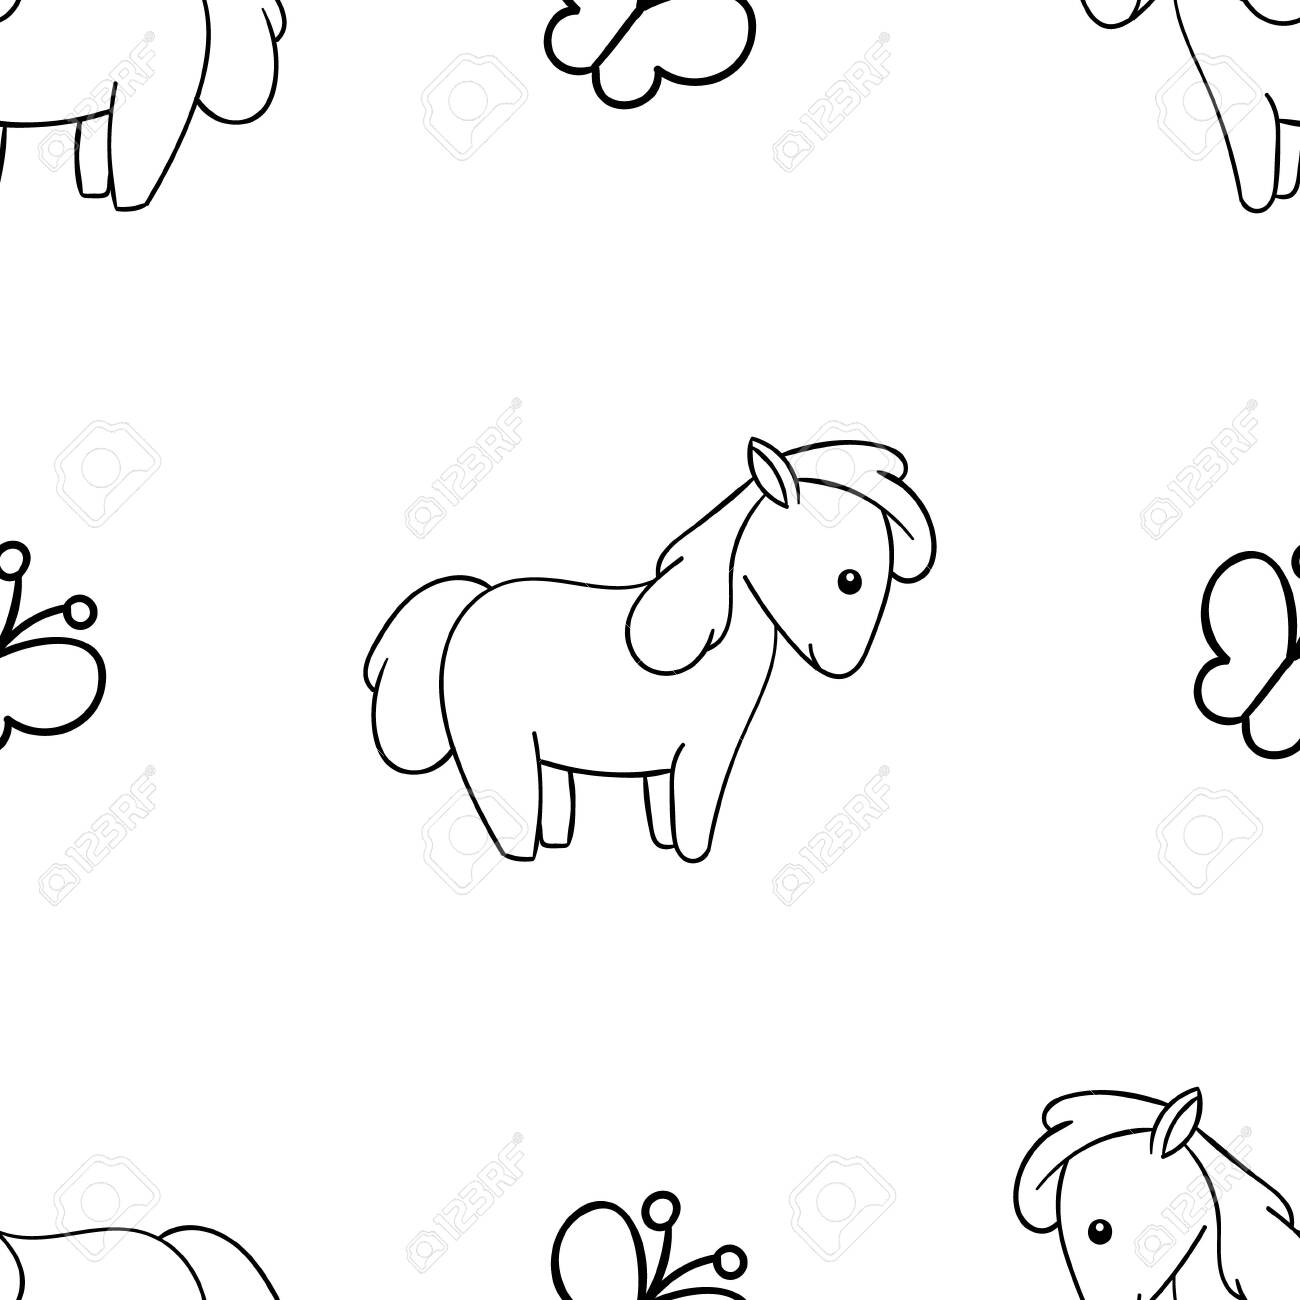 Seamless Pattern Black And White Cute Hand Drawn Horse Doodle Royalty Free Cliparts Vectors And Stock Illustration Image 144305883